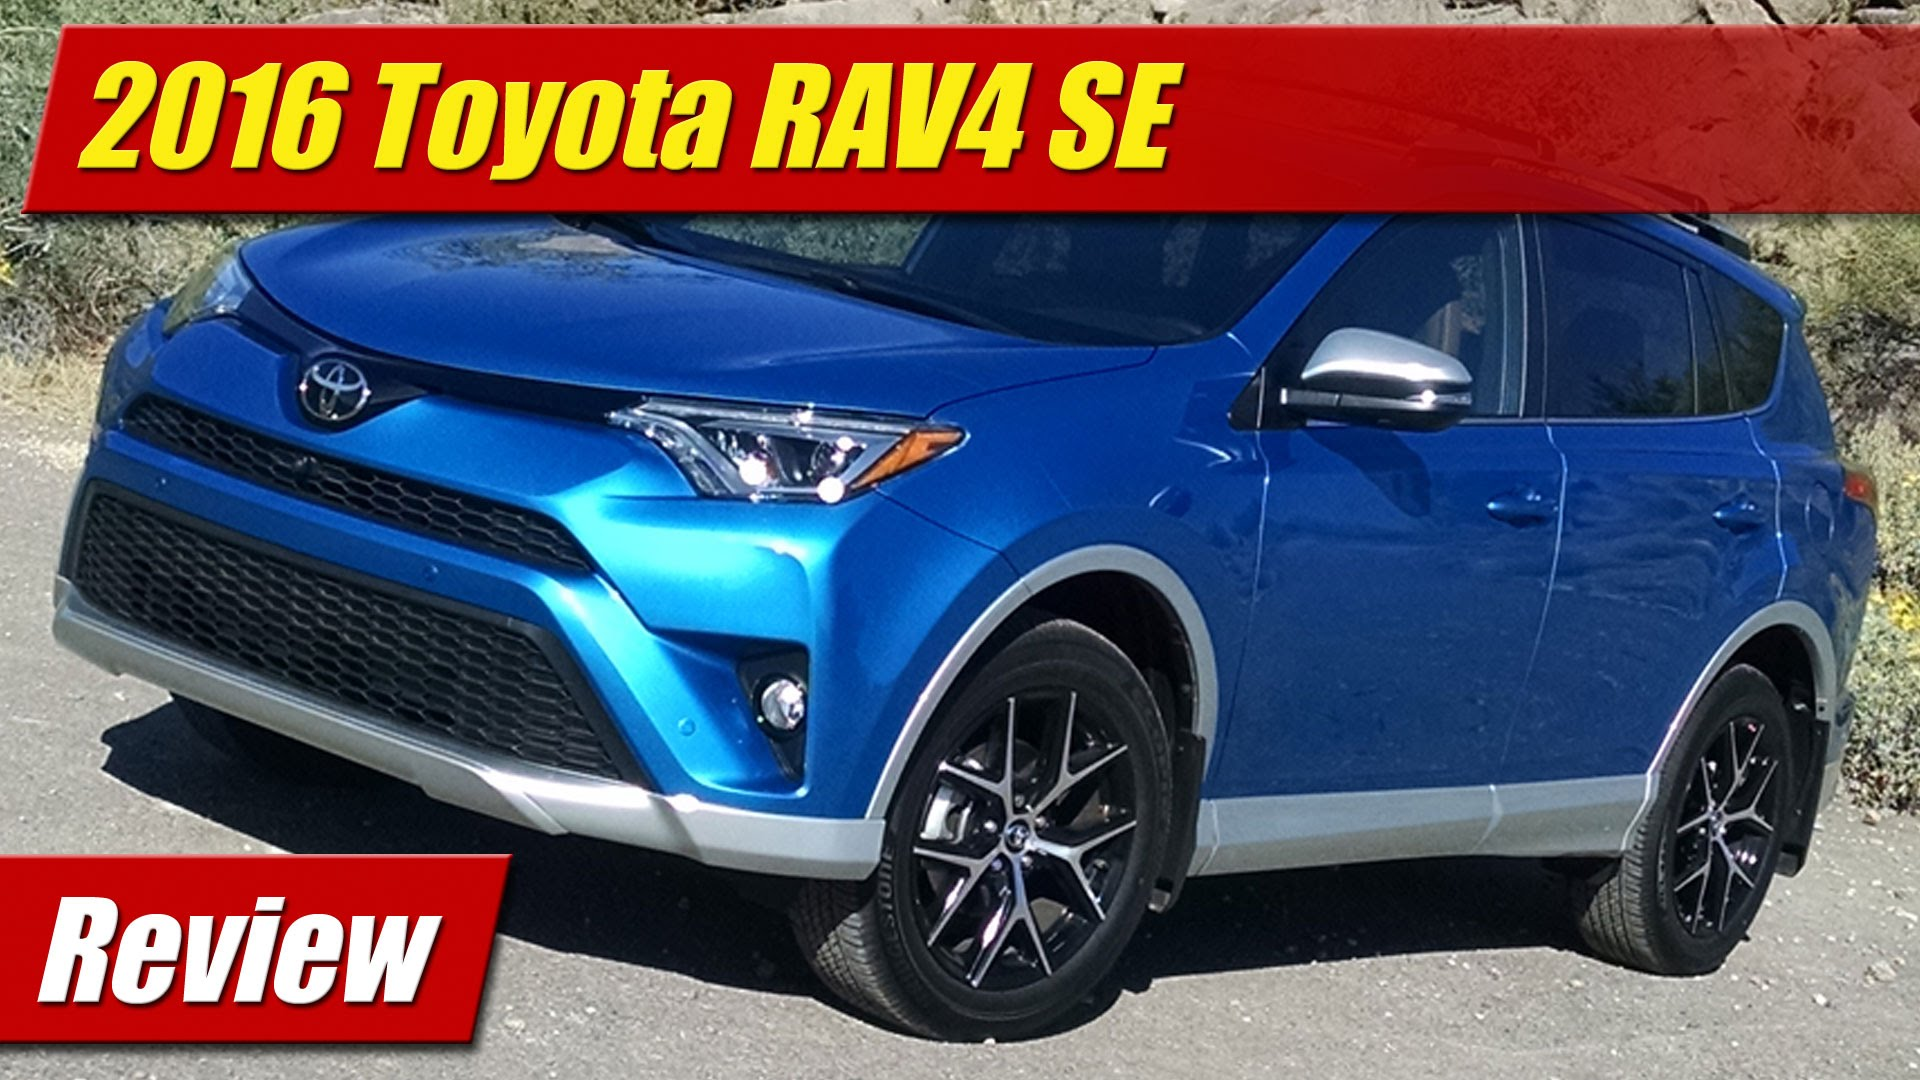 Review: 2016 Toyota RAV4 SE